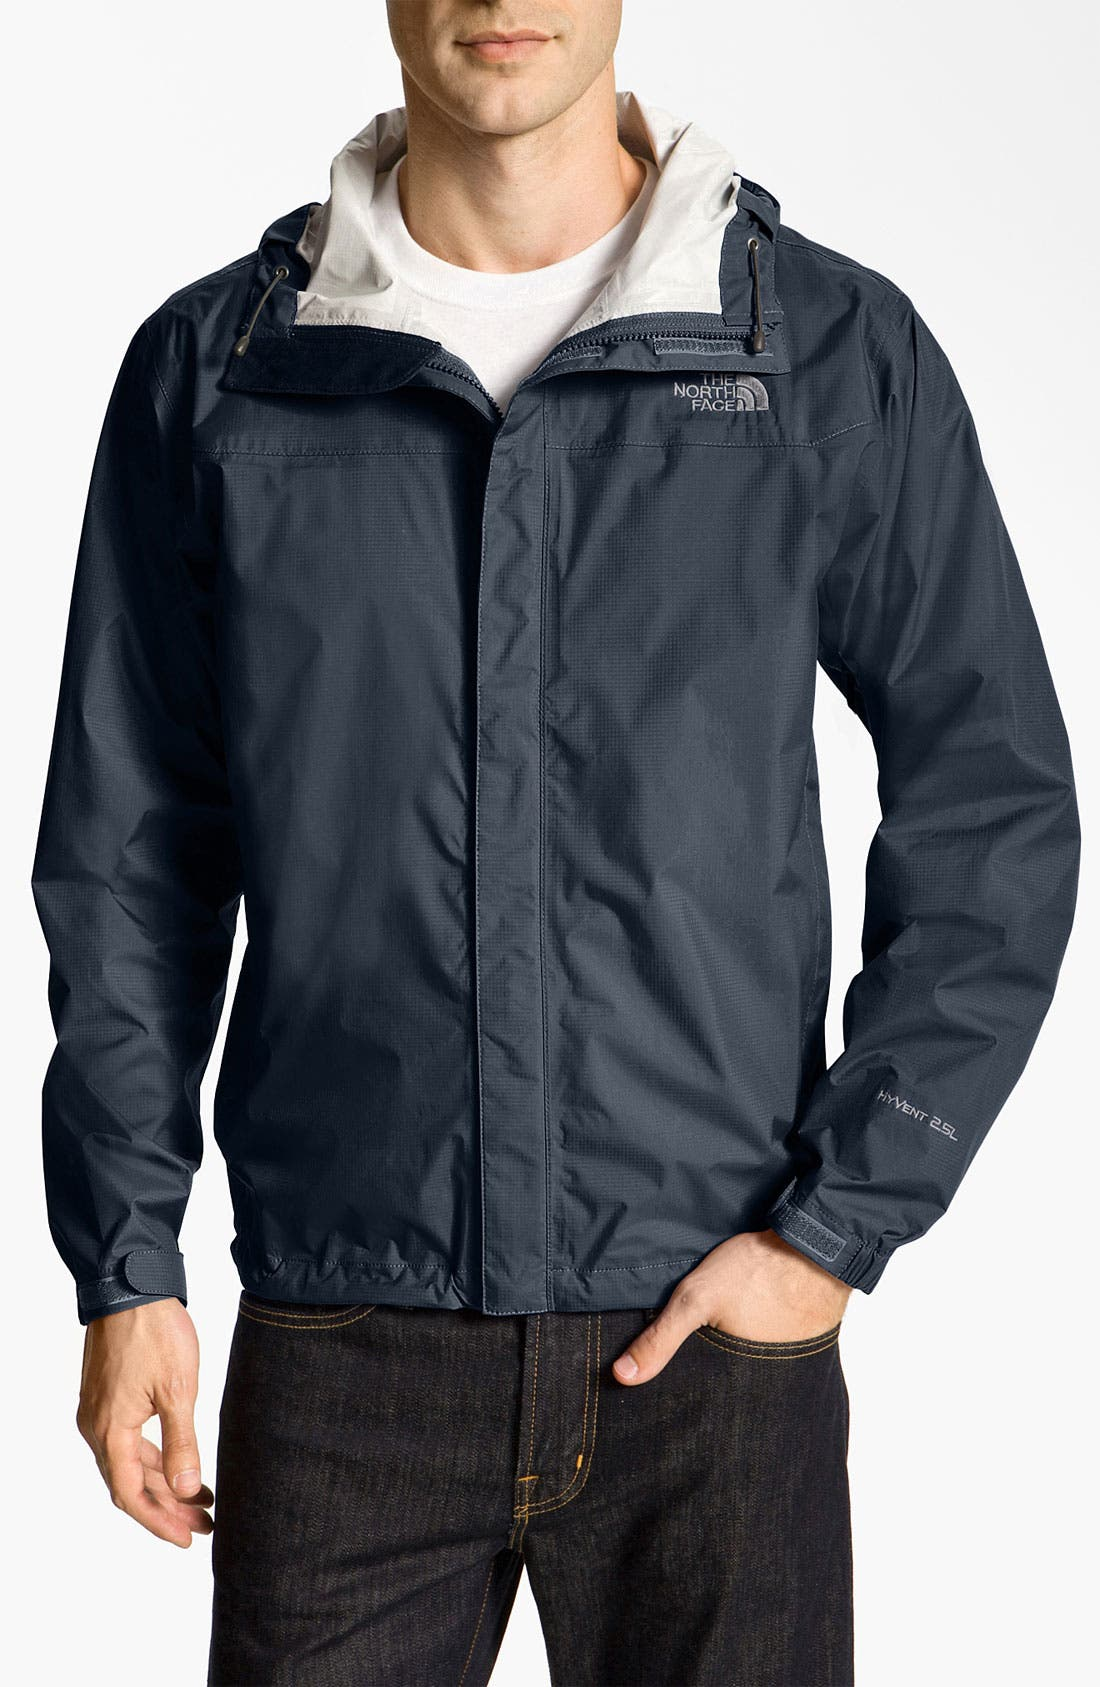 Alternate Image 1 Selected - The North Face 'Venture' Jacket